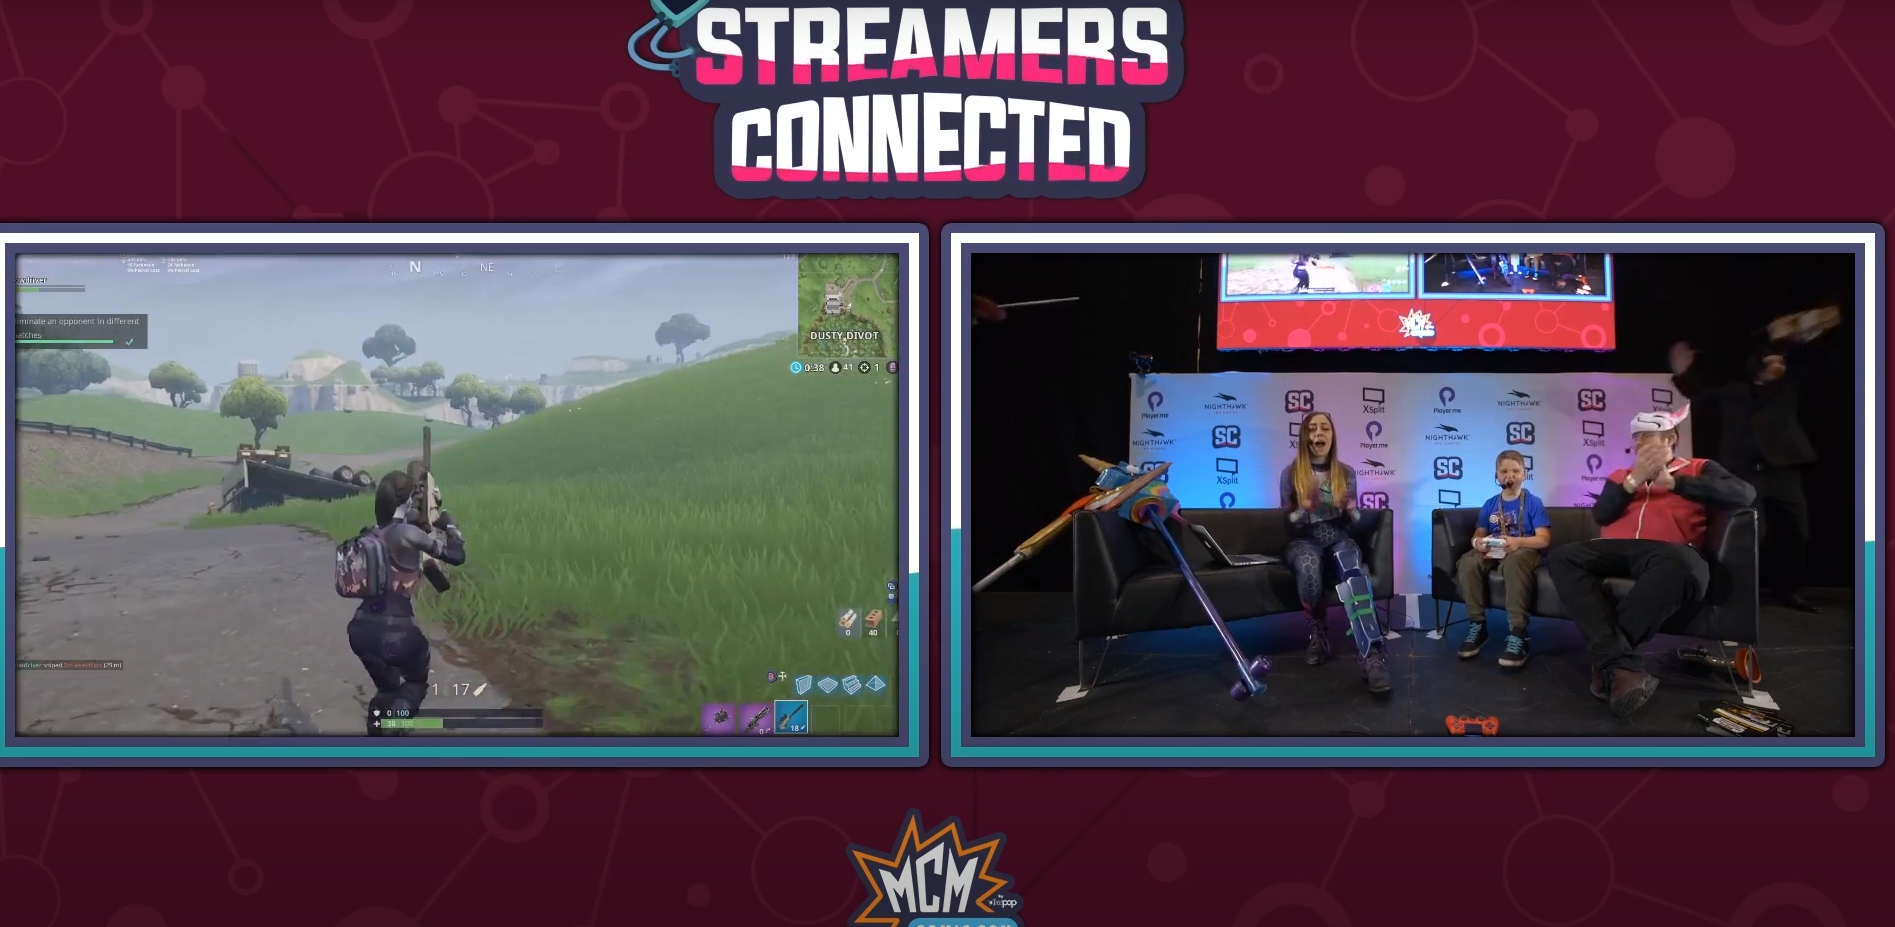 #StreamersConnected MCM Comic Con London Highlights Montage!